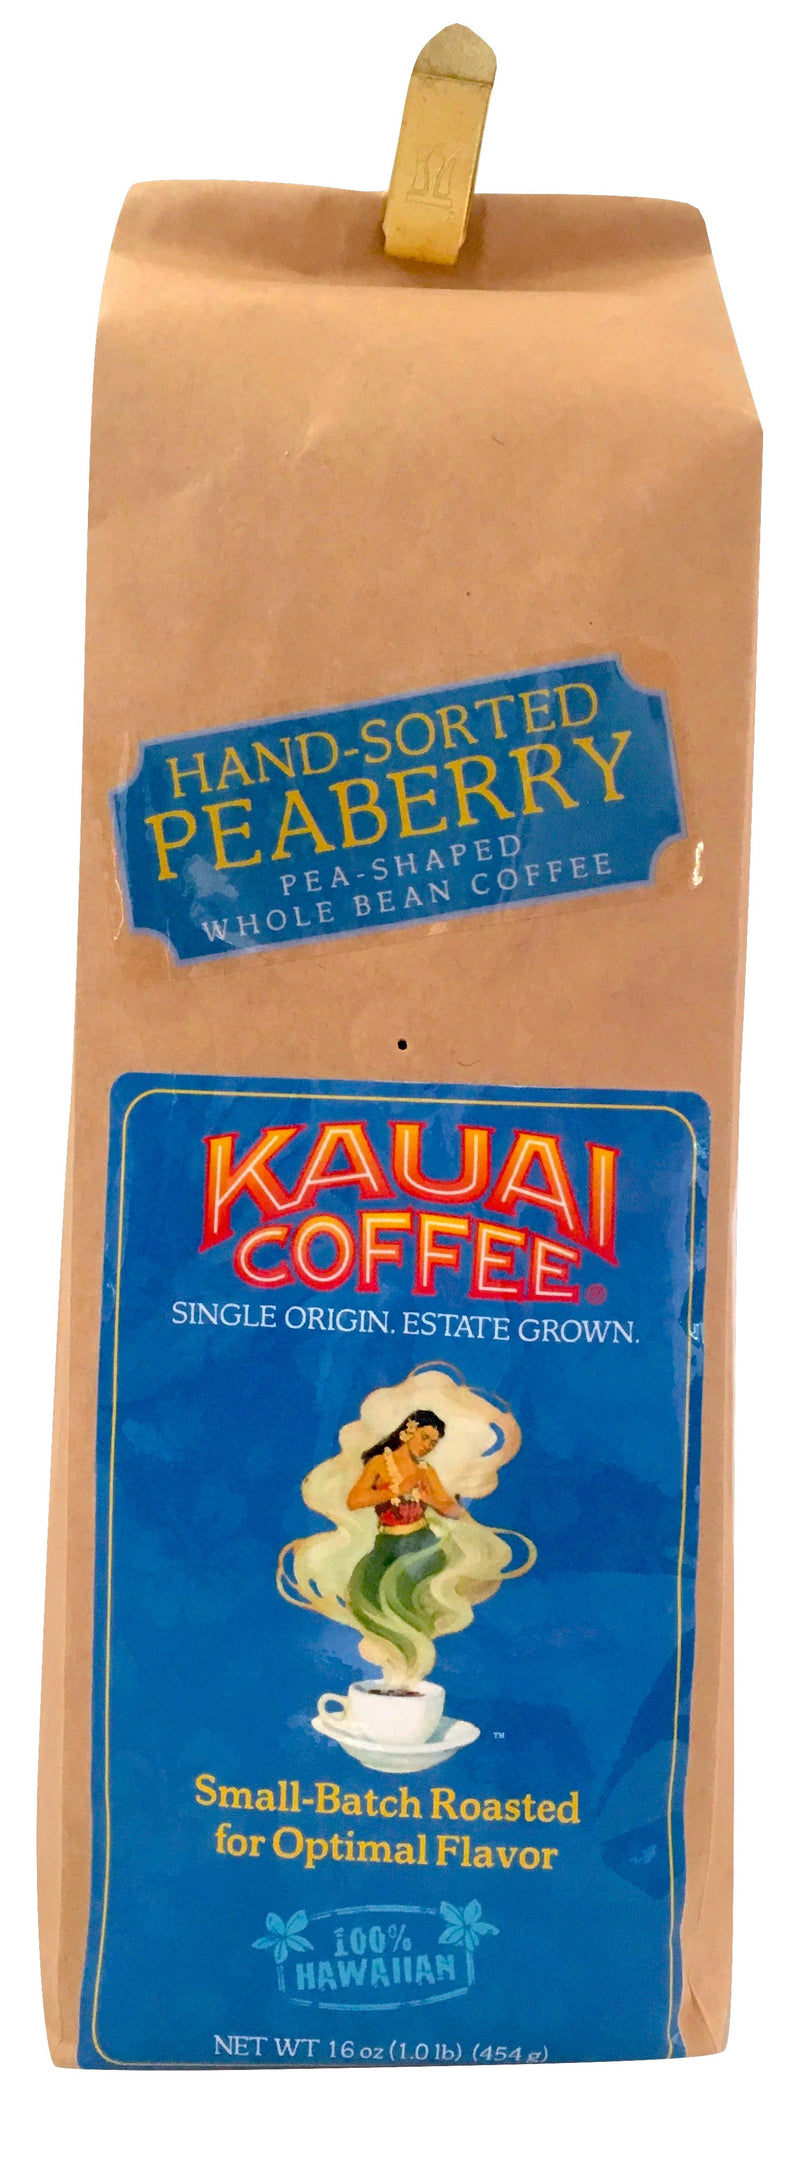 Kauai Coffee 100% Hawaiian Peaberry Whole Bean Coffee - 1lb